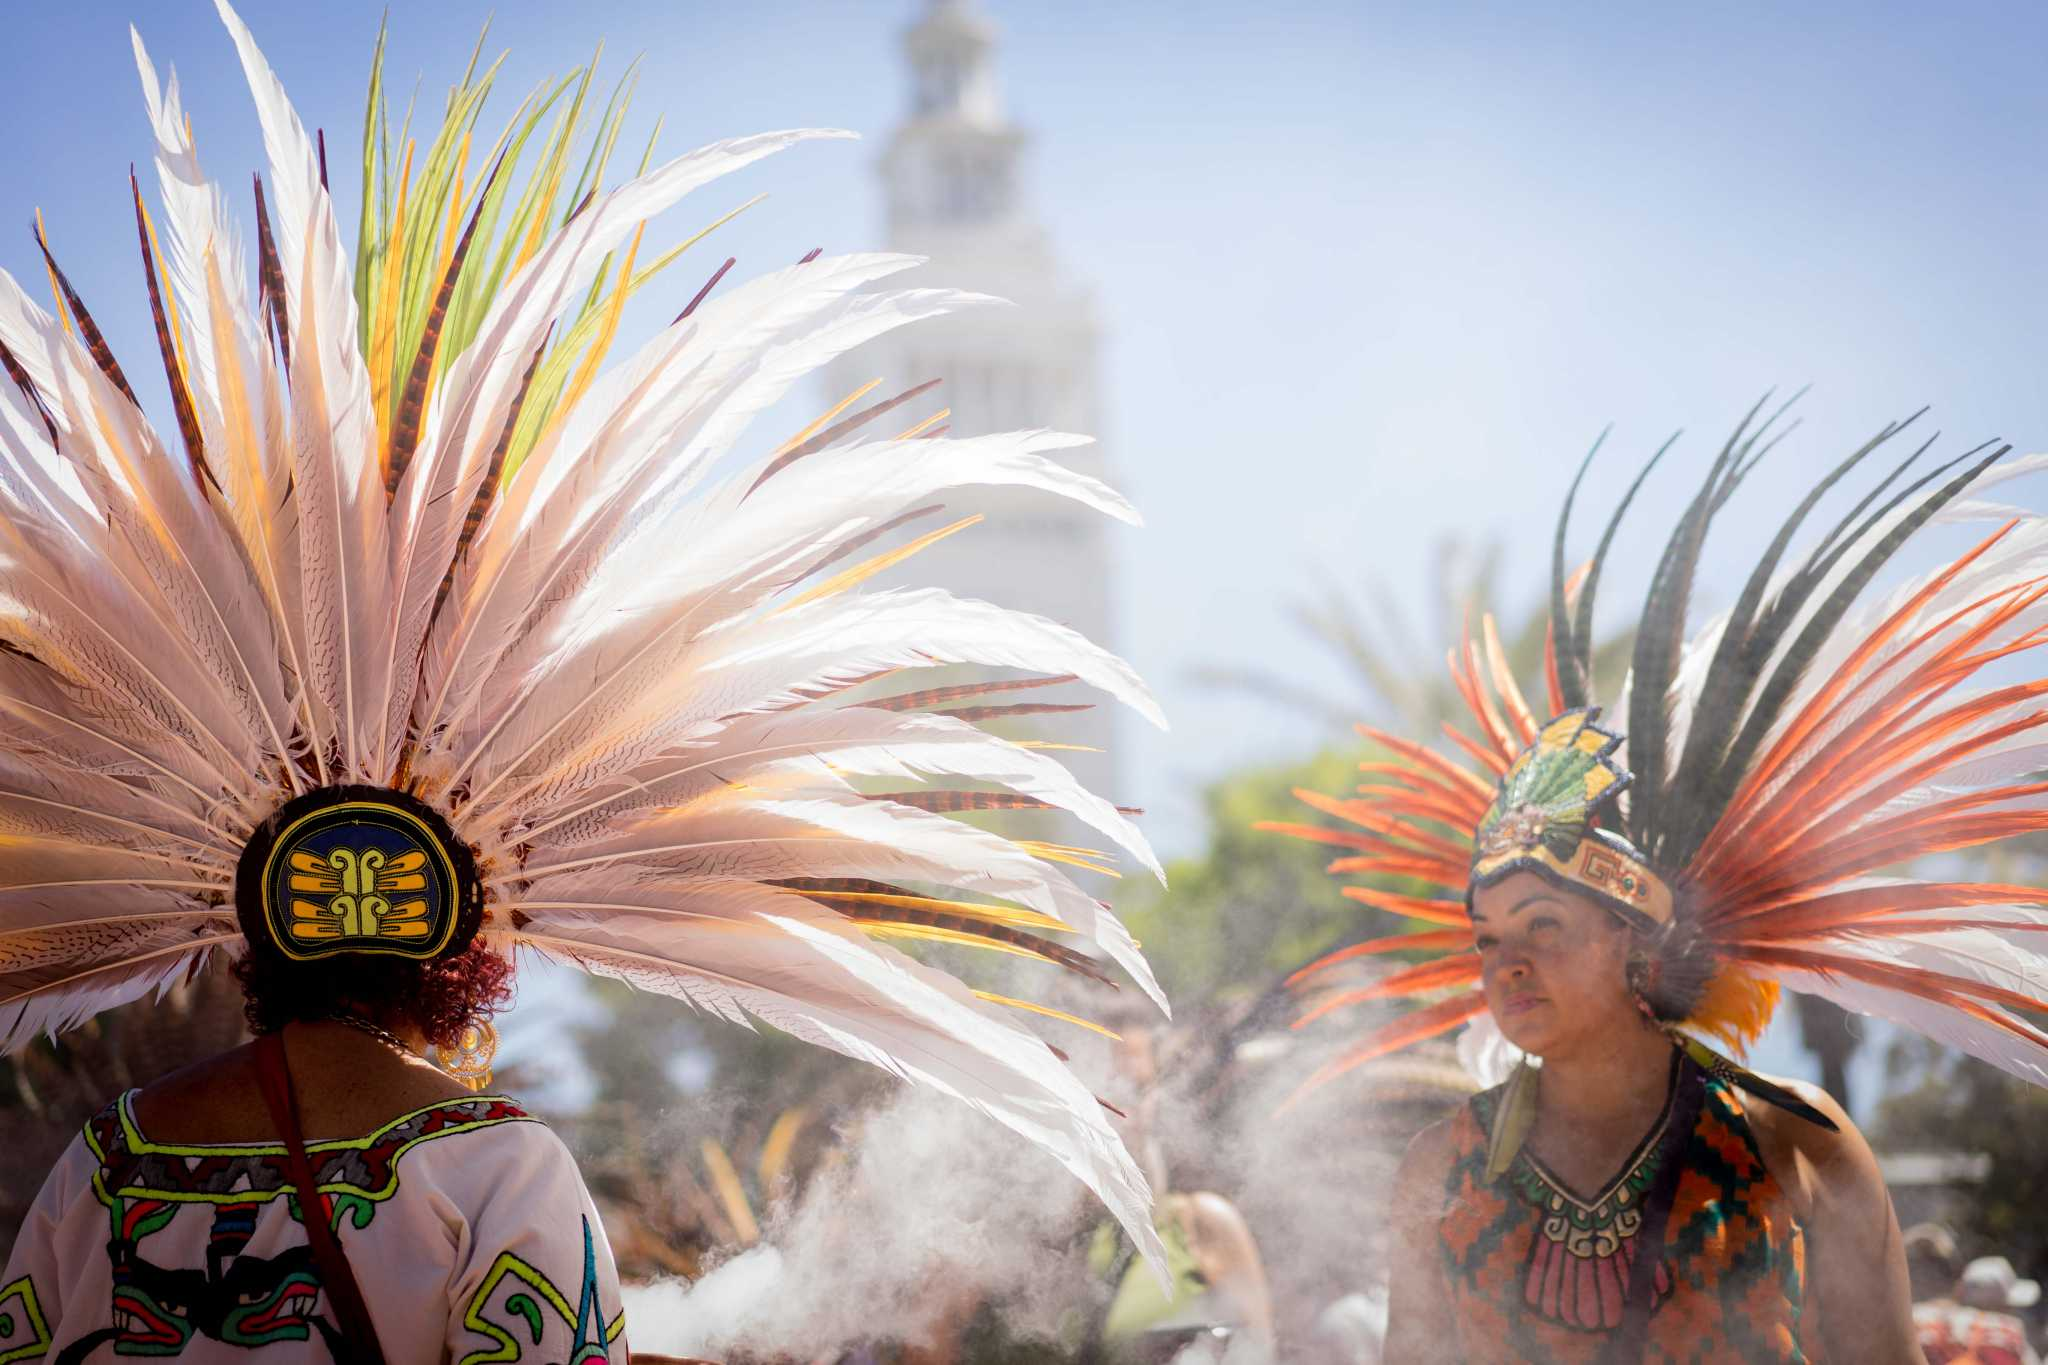 Maya Ponce (right) speaks with a fellow traditional Aztec dancer from the Xiuhcoatl group at the May Day protest down Embarcadero Street on Monday, May 1, 2017. (Sarahbeth Maney/Xpress).